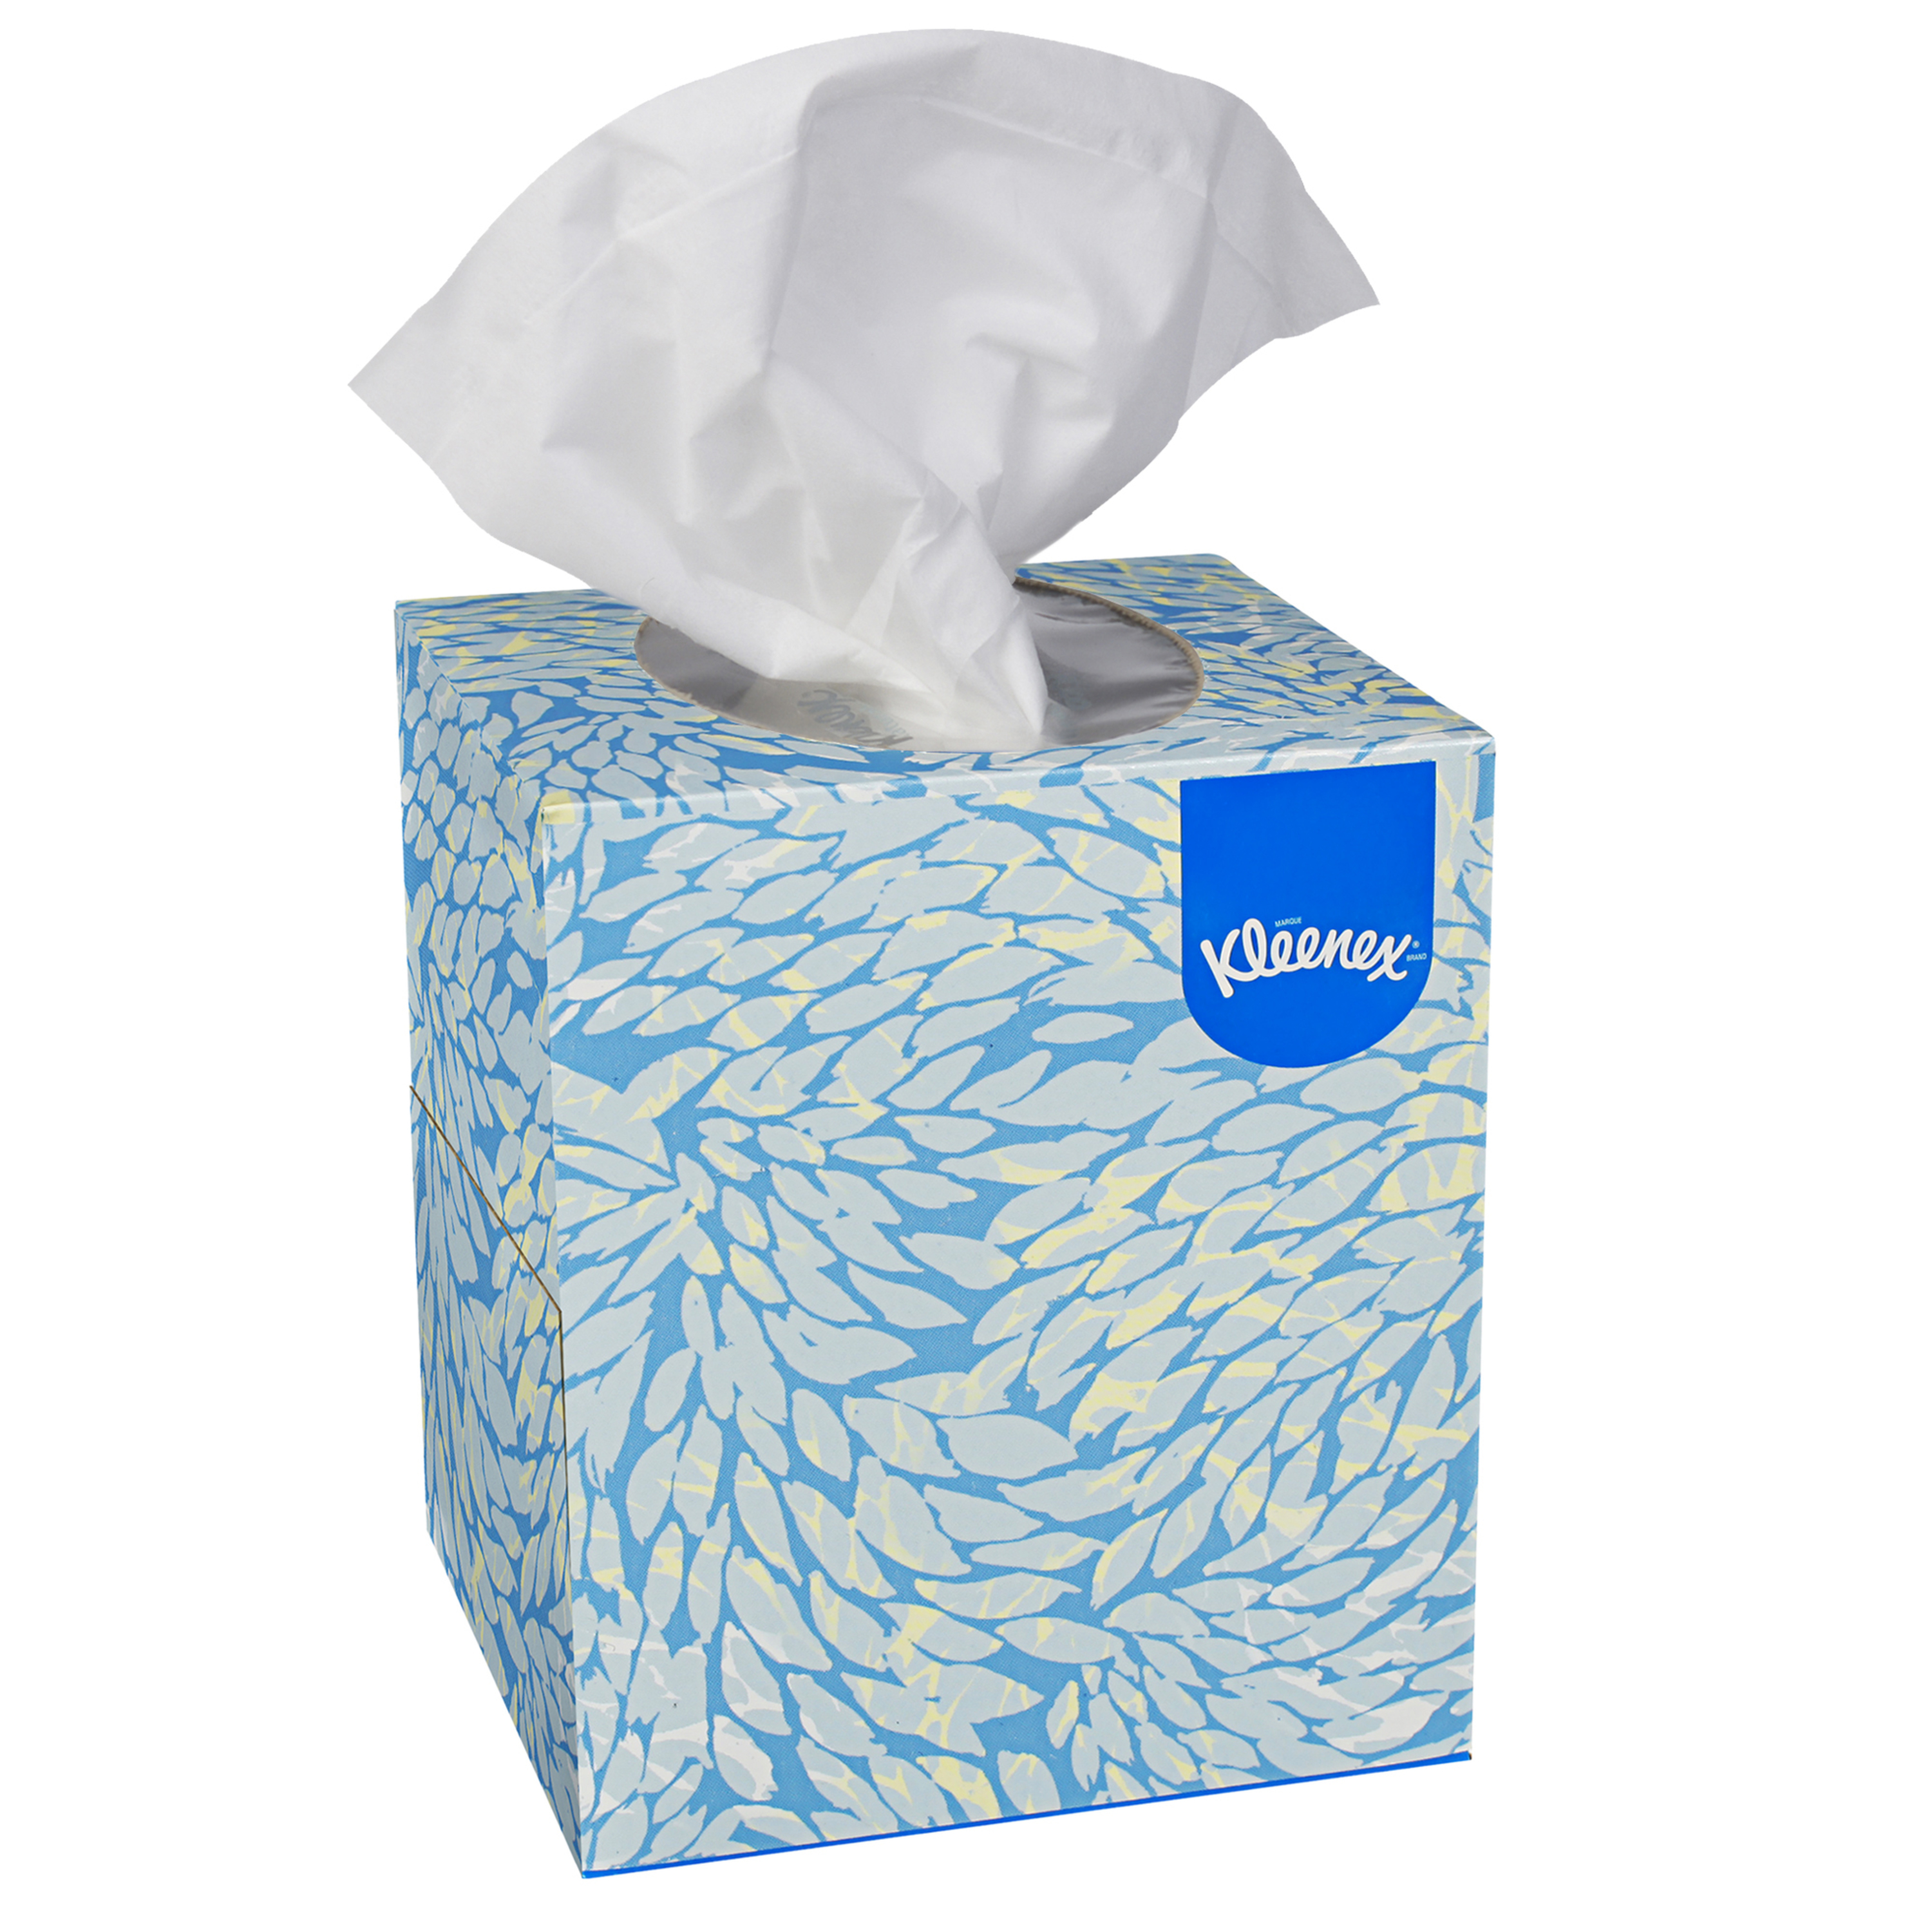 FACIAL TISSUE KLEENEX CUBE BOX 36 BOXES OF 100